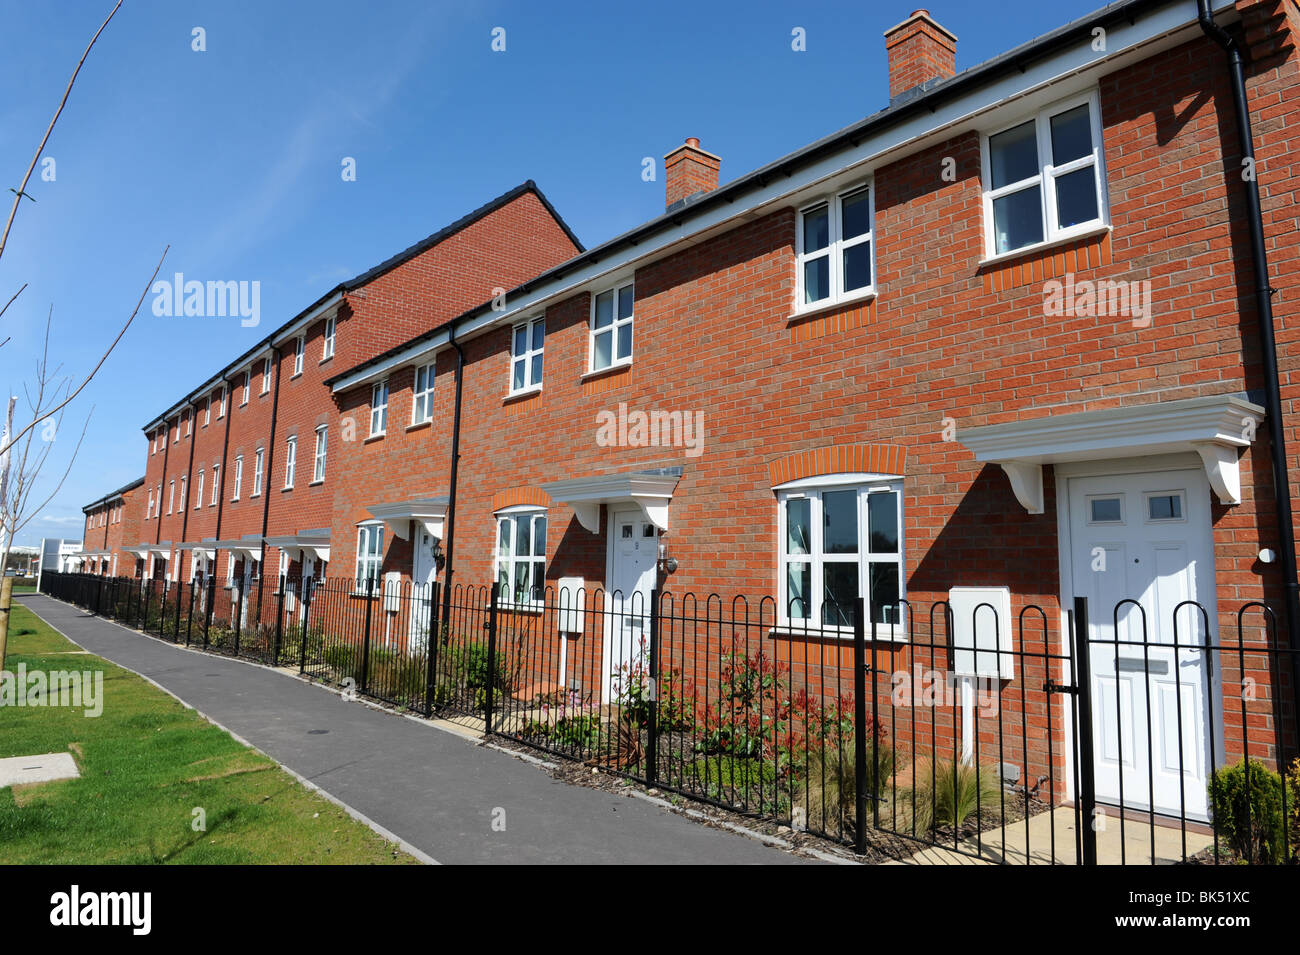 Modern terraced houses at Trench in Telford Shropshire uk - Stock Image